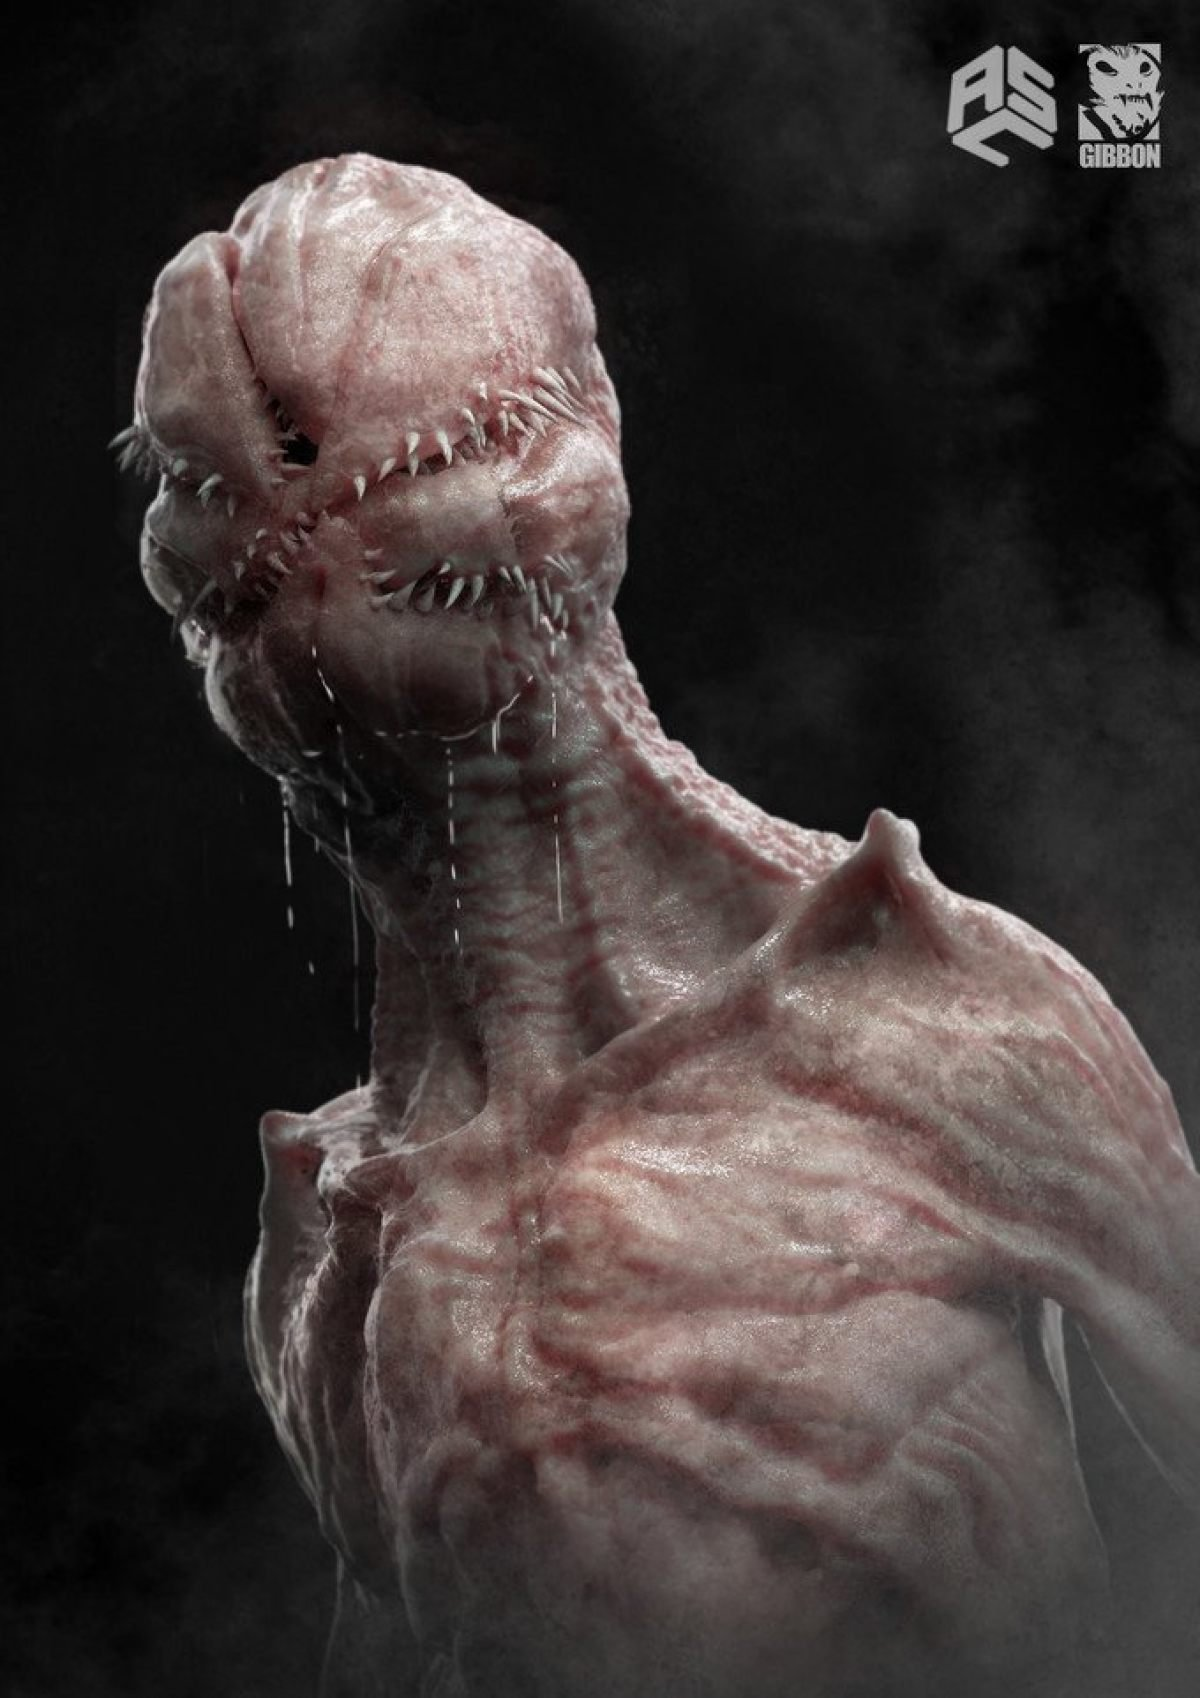 Check Out Some Of STRANGER THINGS Freaky Alternate Creature Designs